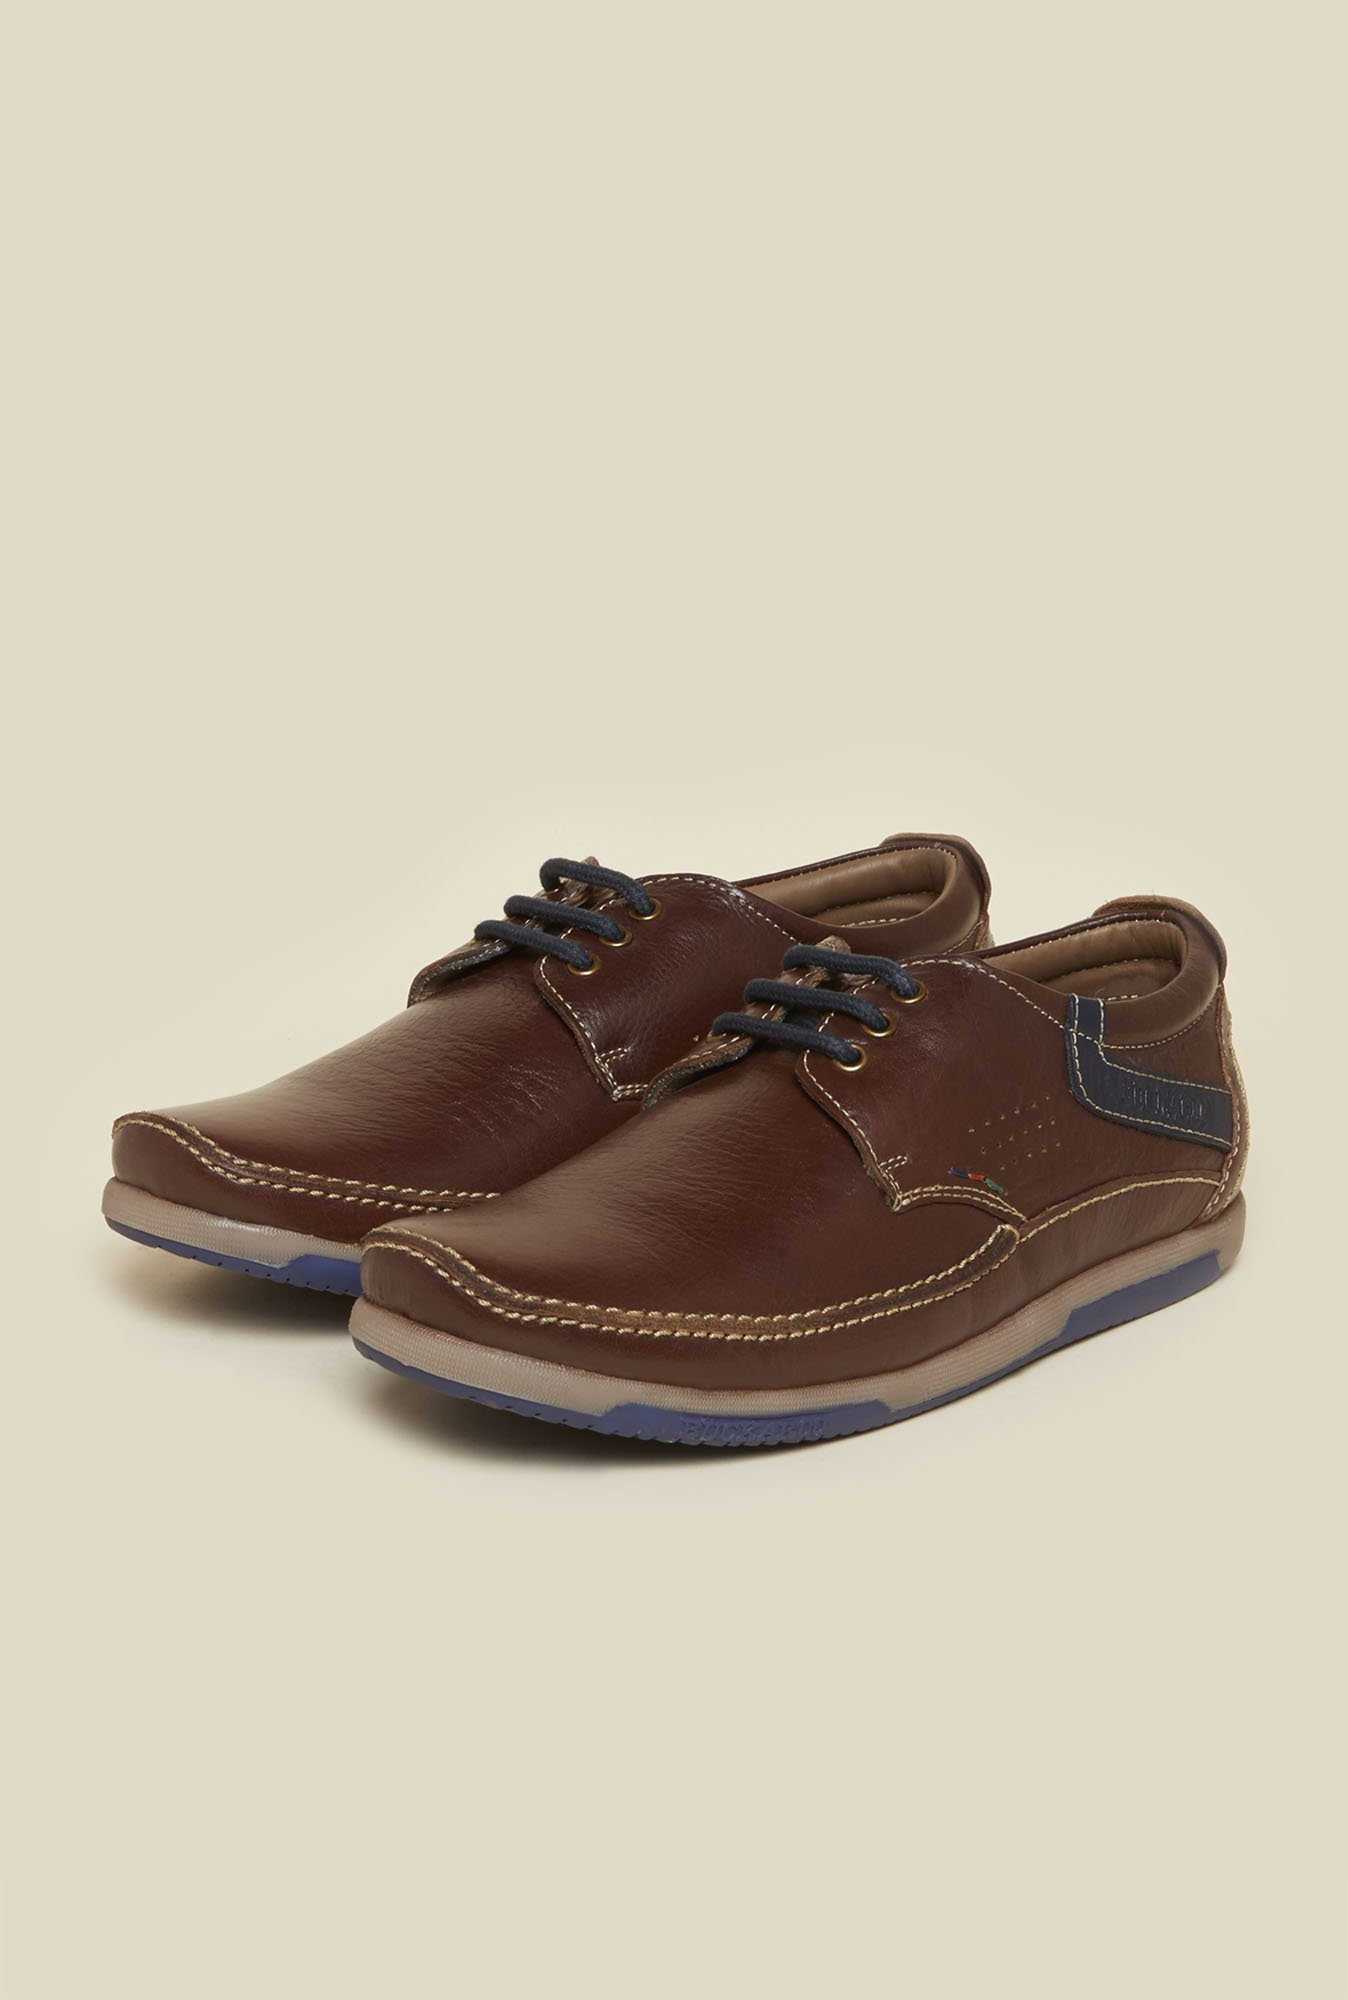 Buckaroo Rafael Brown Derby Shoes